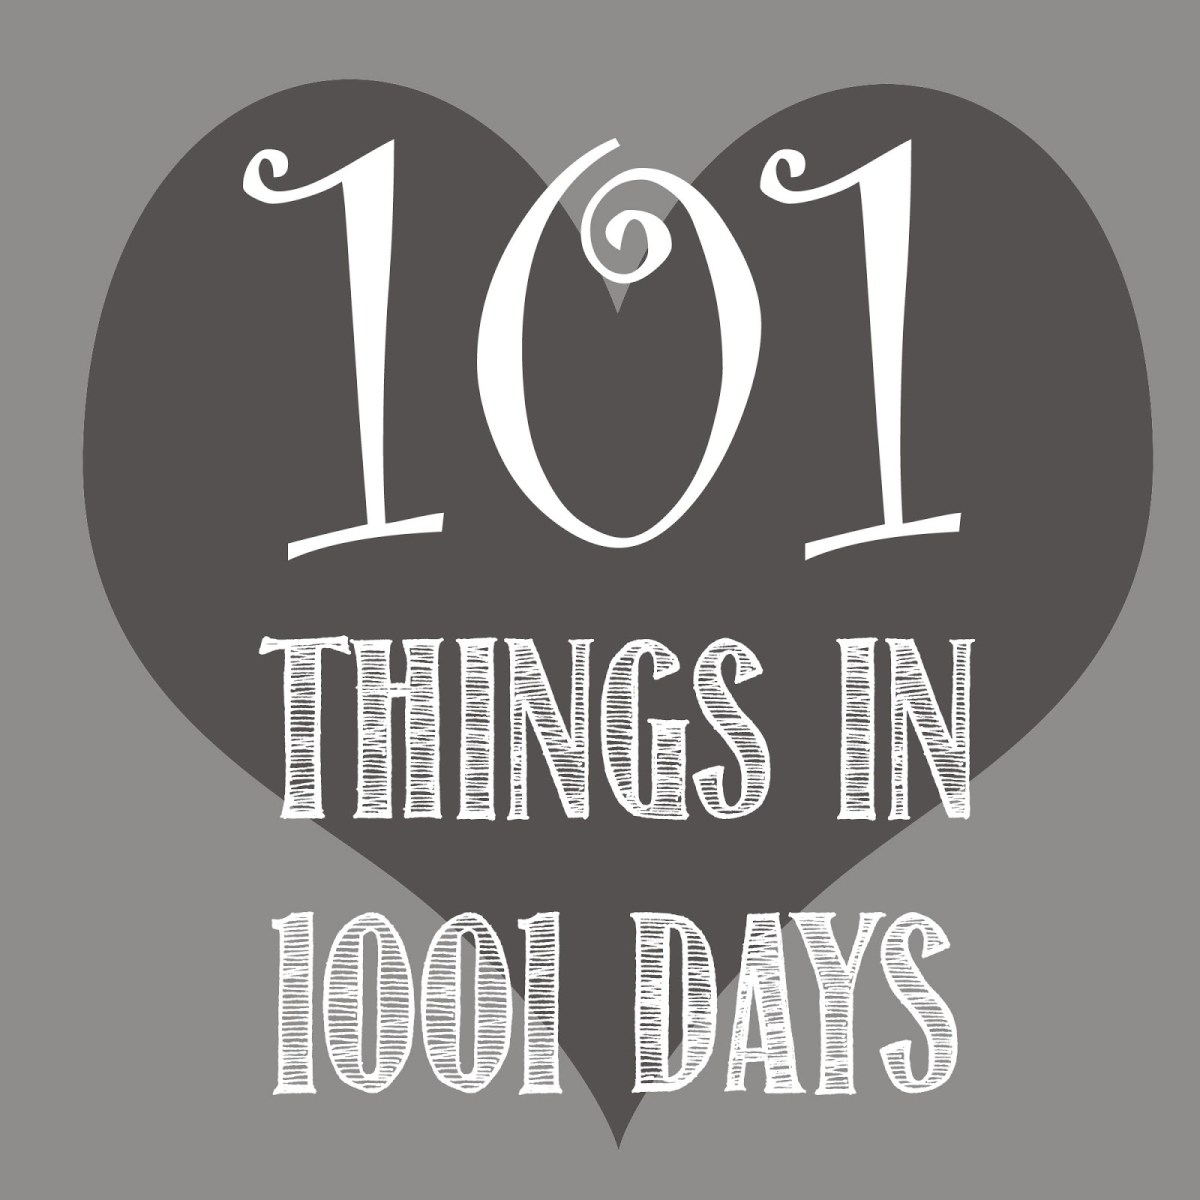 101 Things in 1001 Days - What exactly is it?